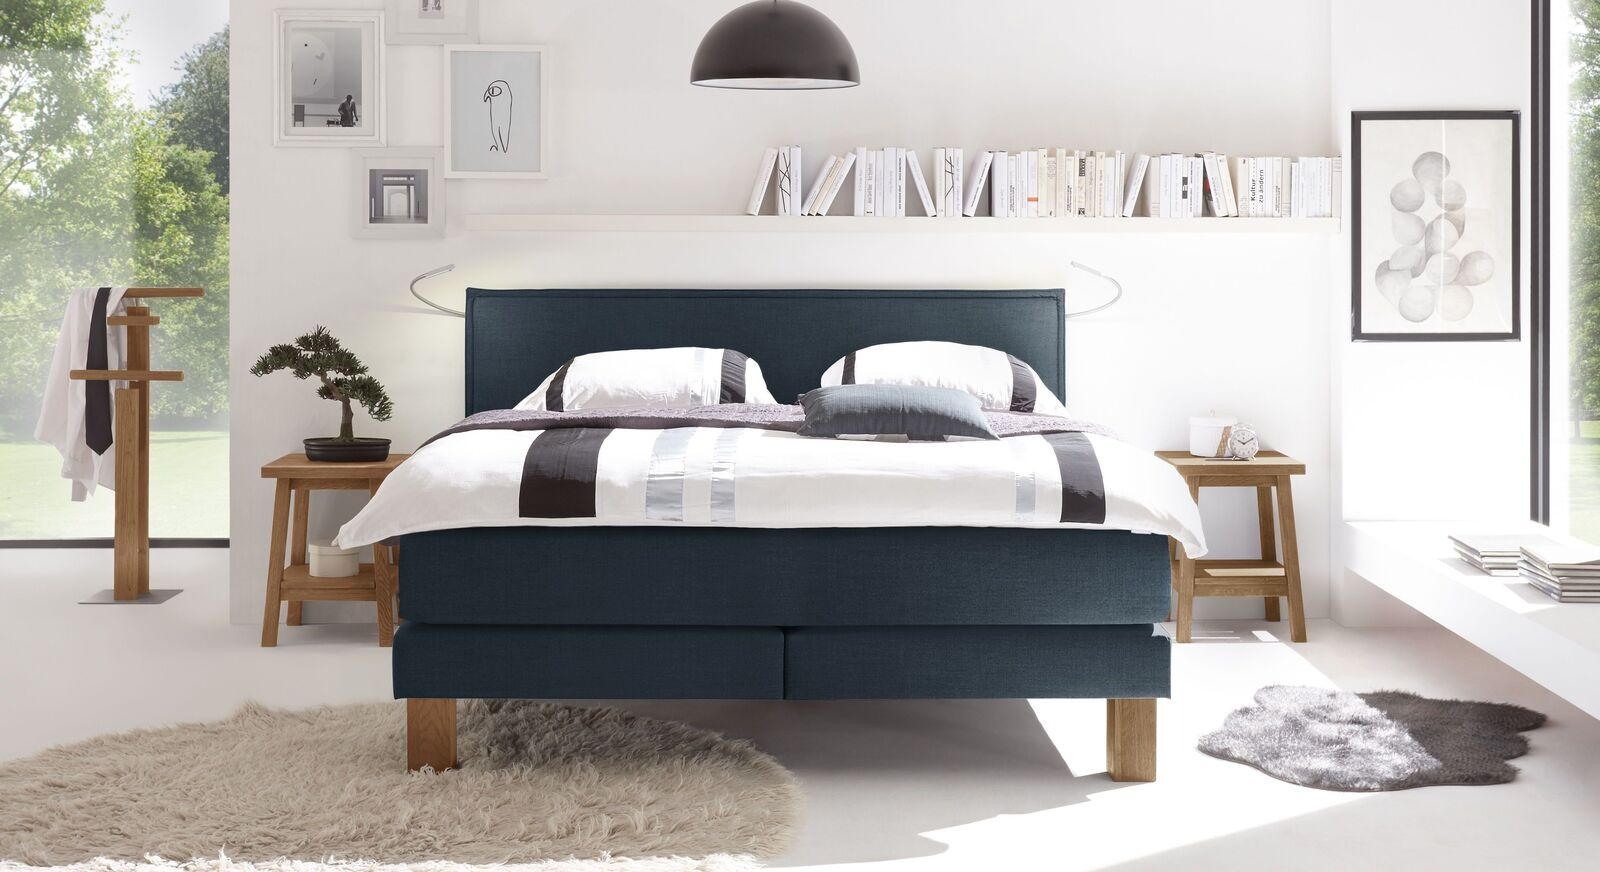 boxspringbett individuell konfigurierbar bis 150 kg oss. Black Bedroom Furniture Sets. Home Design Ideas